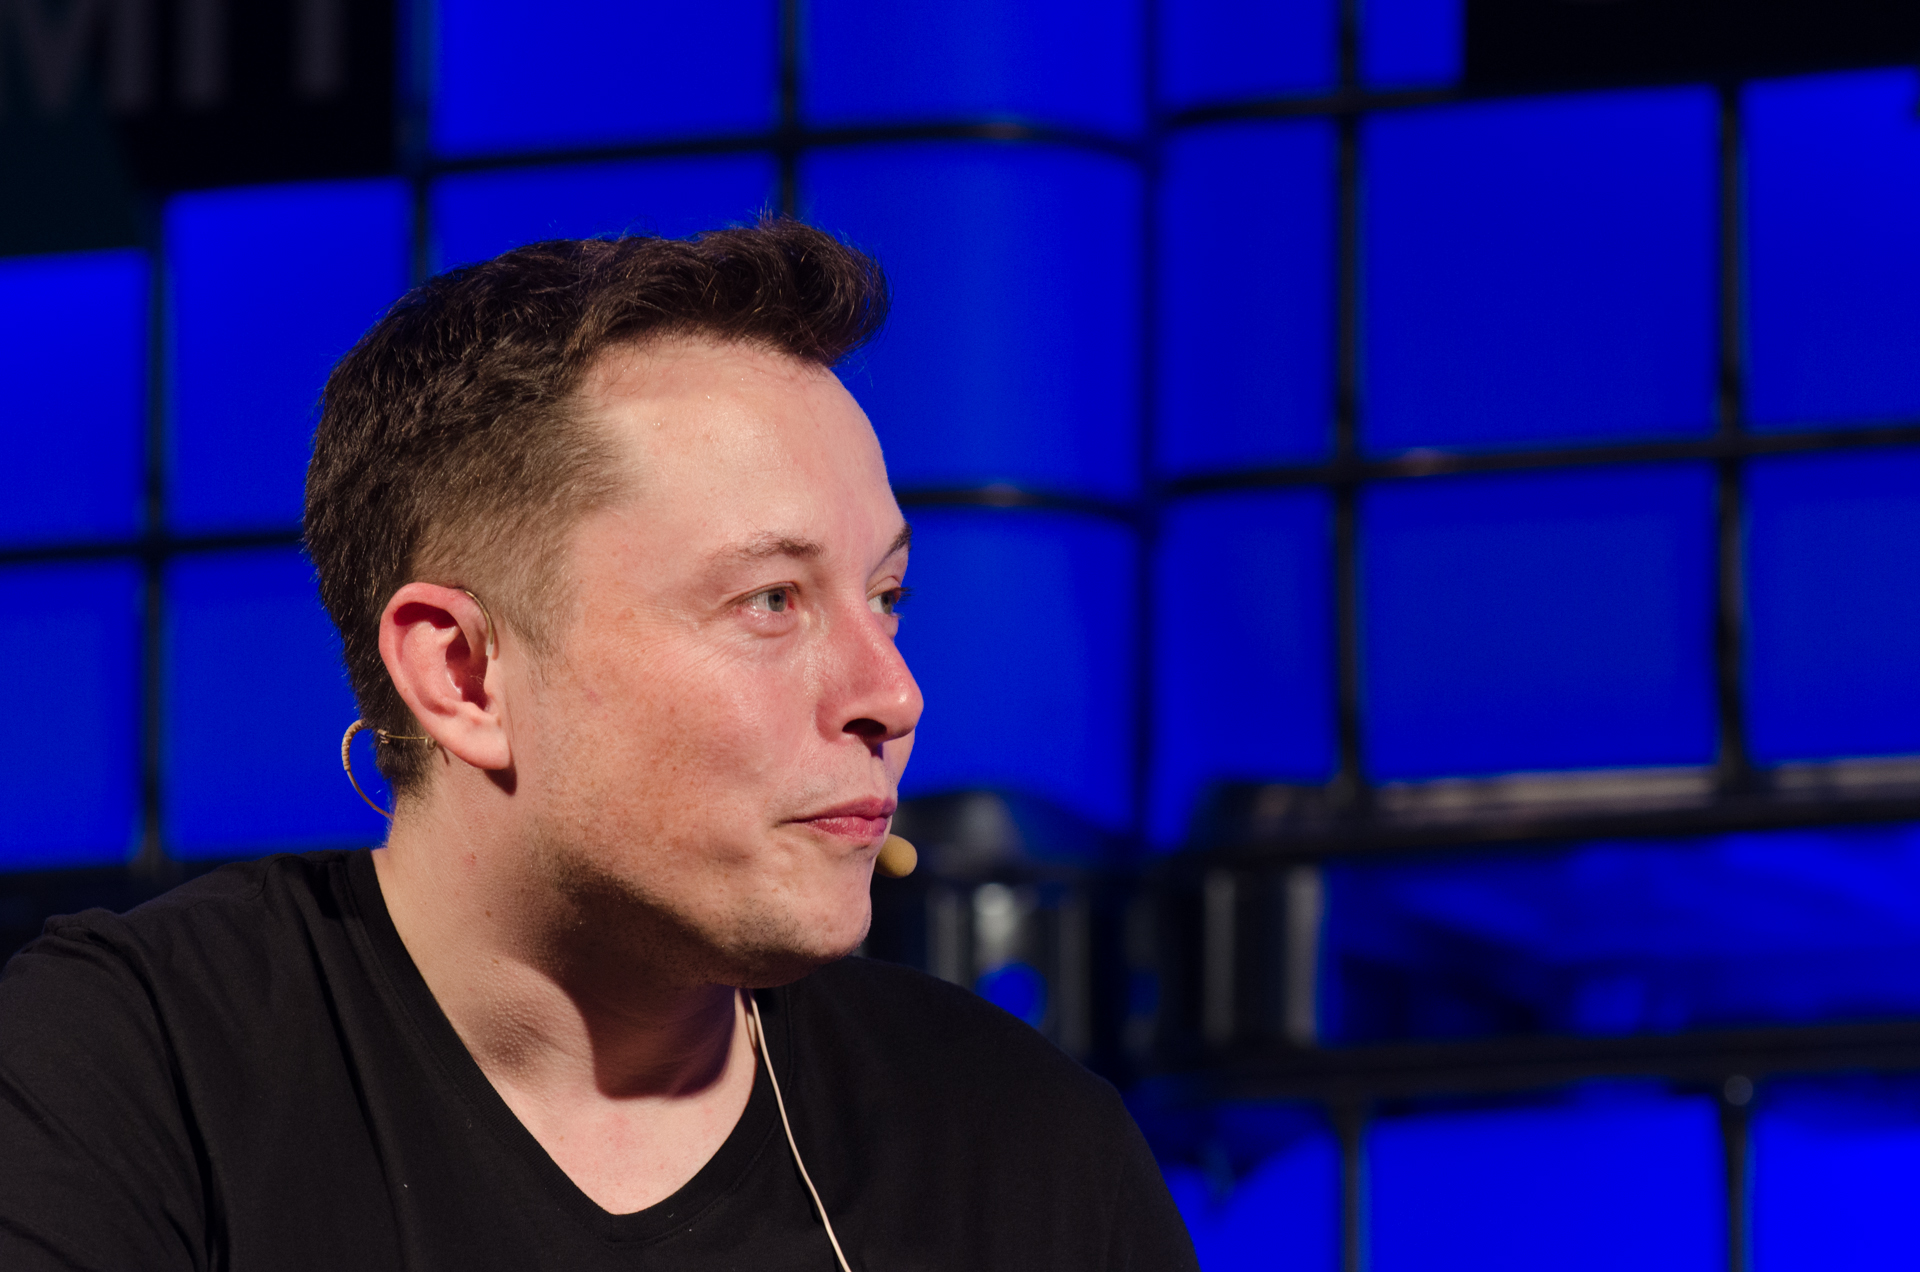 Elon Musk Calls The Journalists Who Criticize The